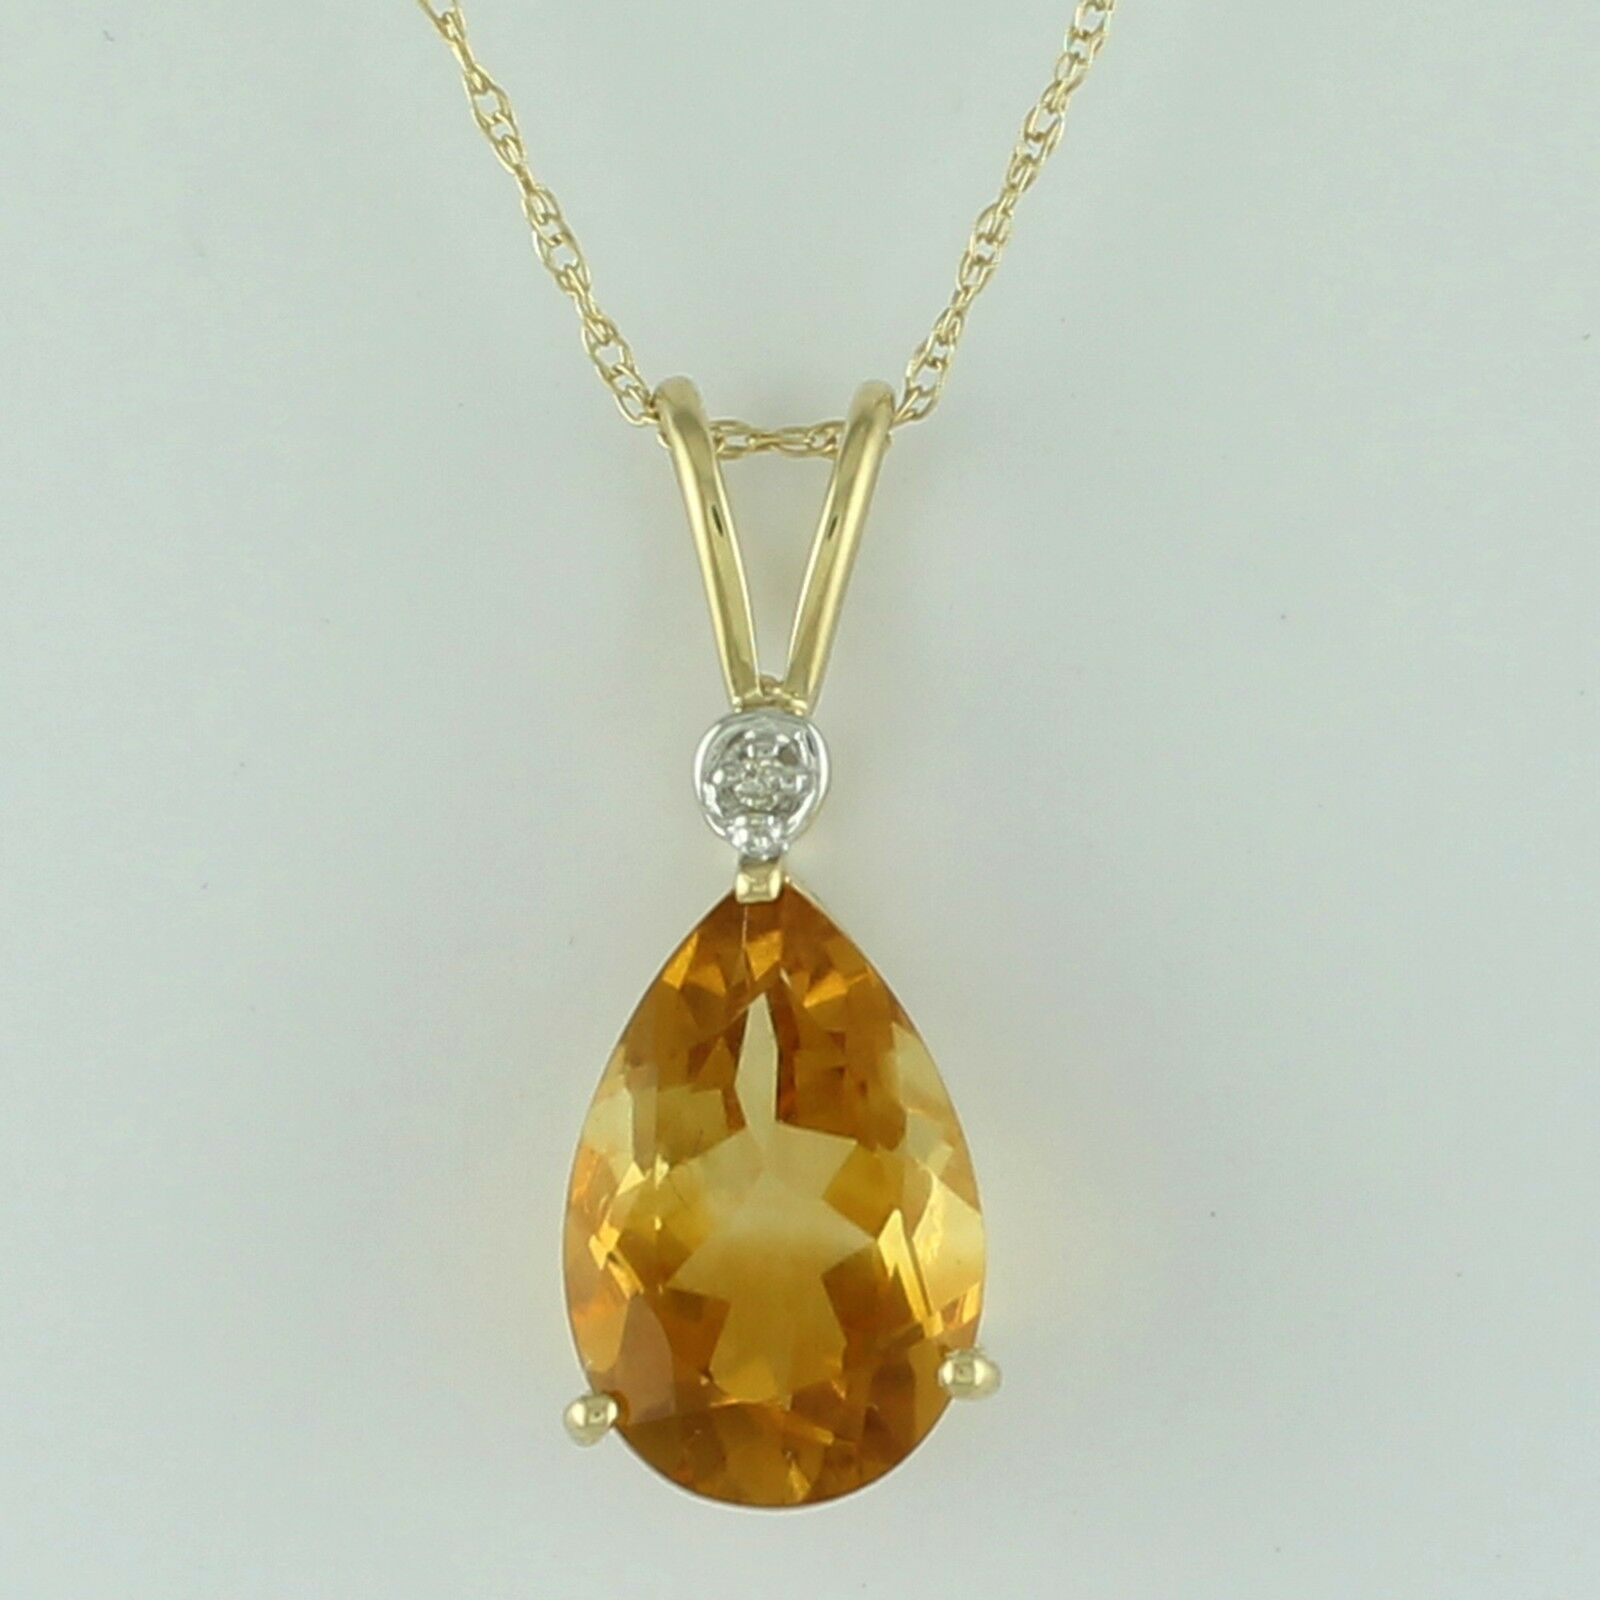 Citrine 2.33 Ct Natural Pendant 10K Yellow gold Whit Diamond Occasion Jewelry